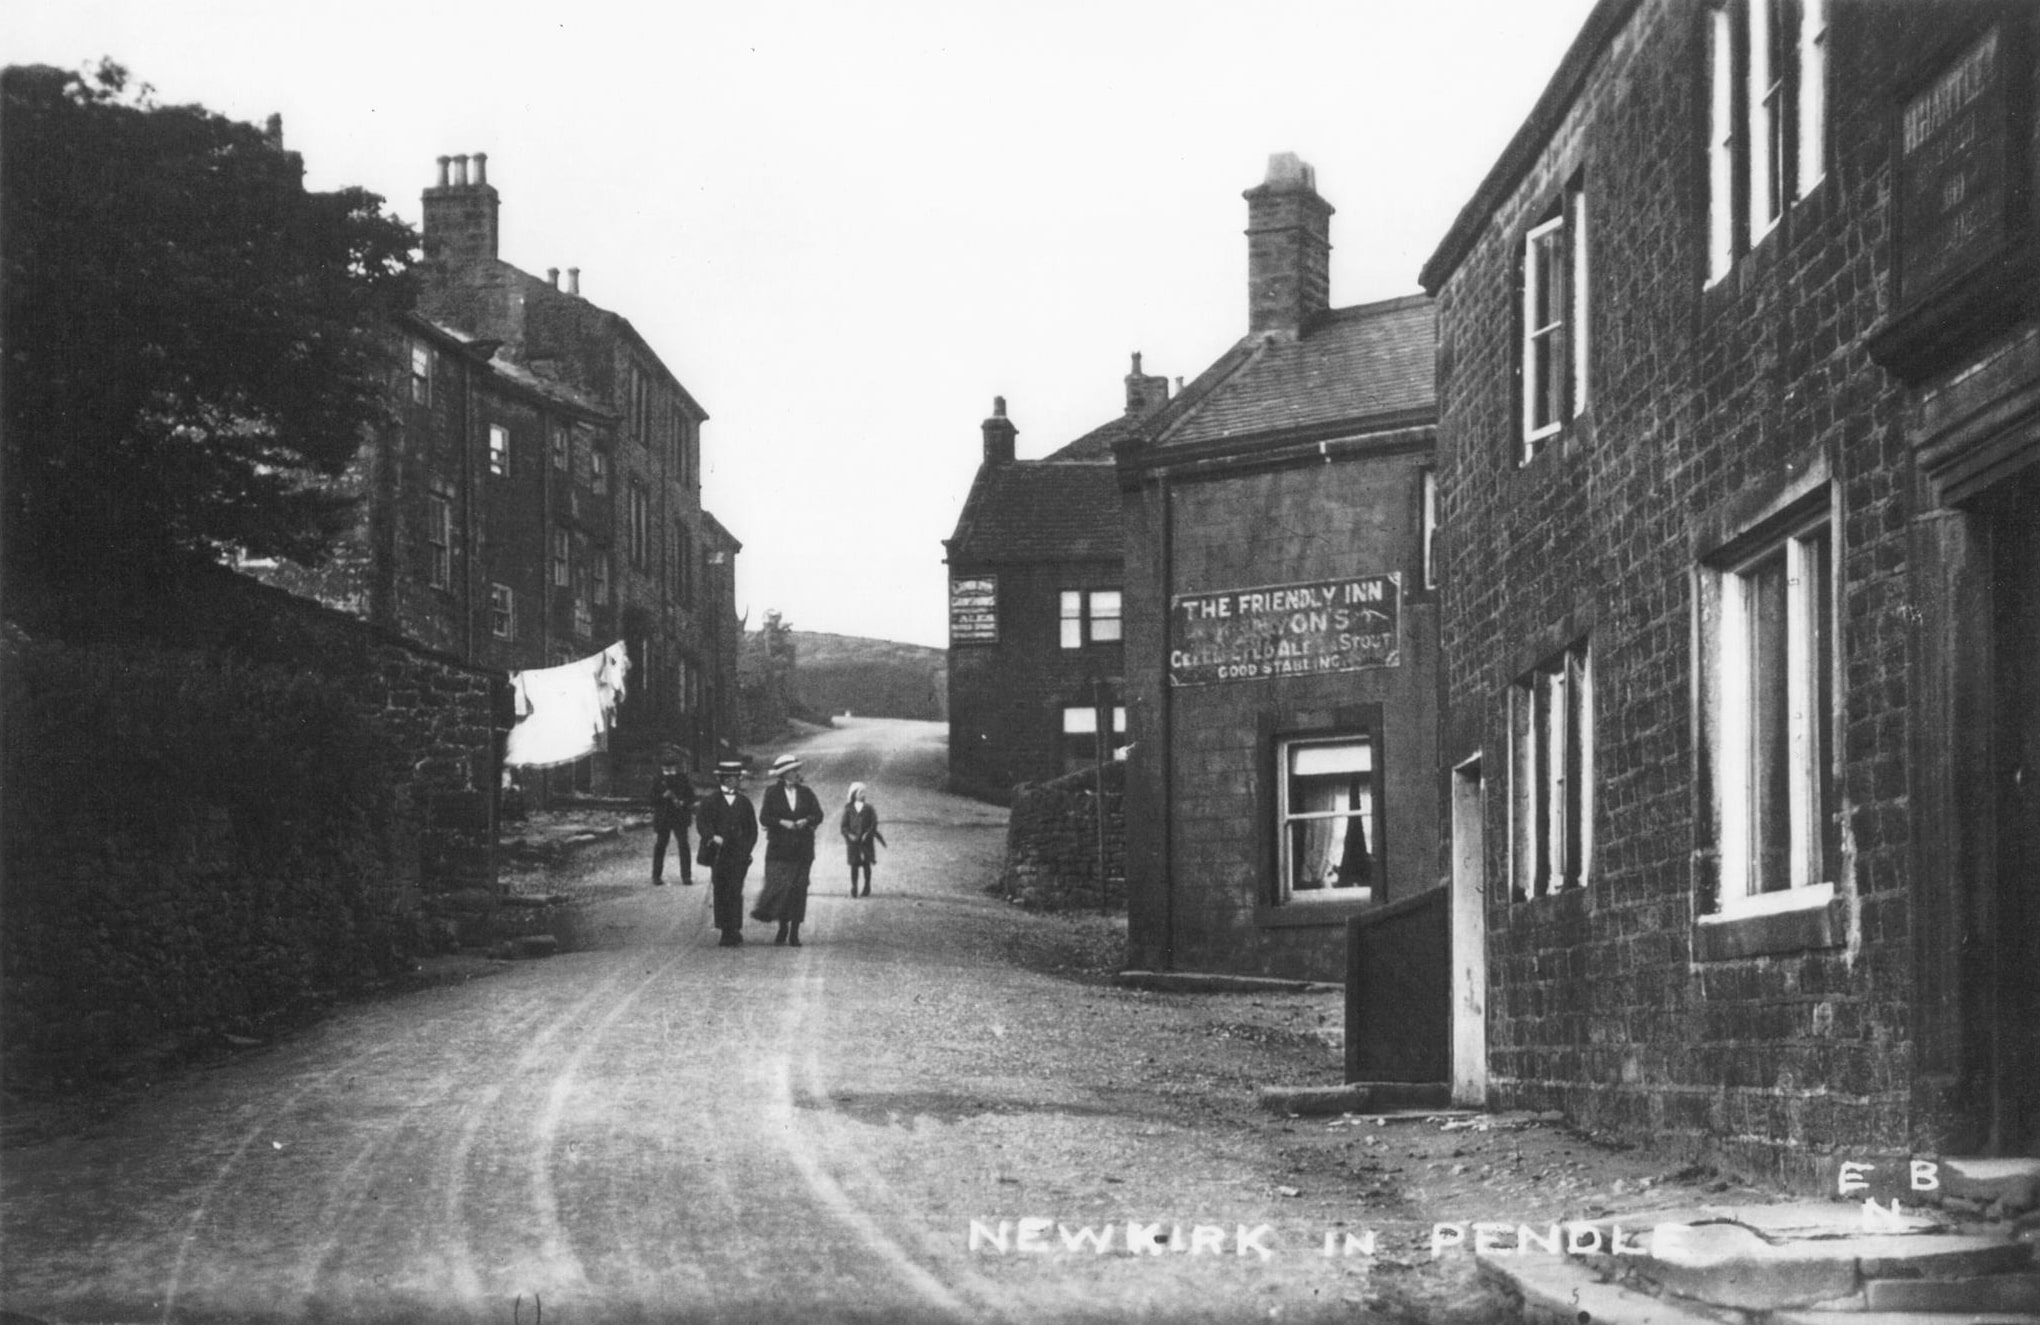 Historic Newchurch-in-Pendle